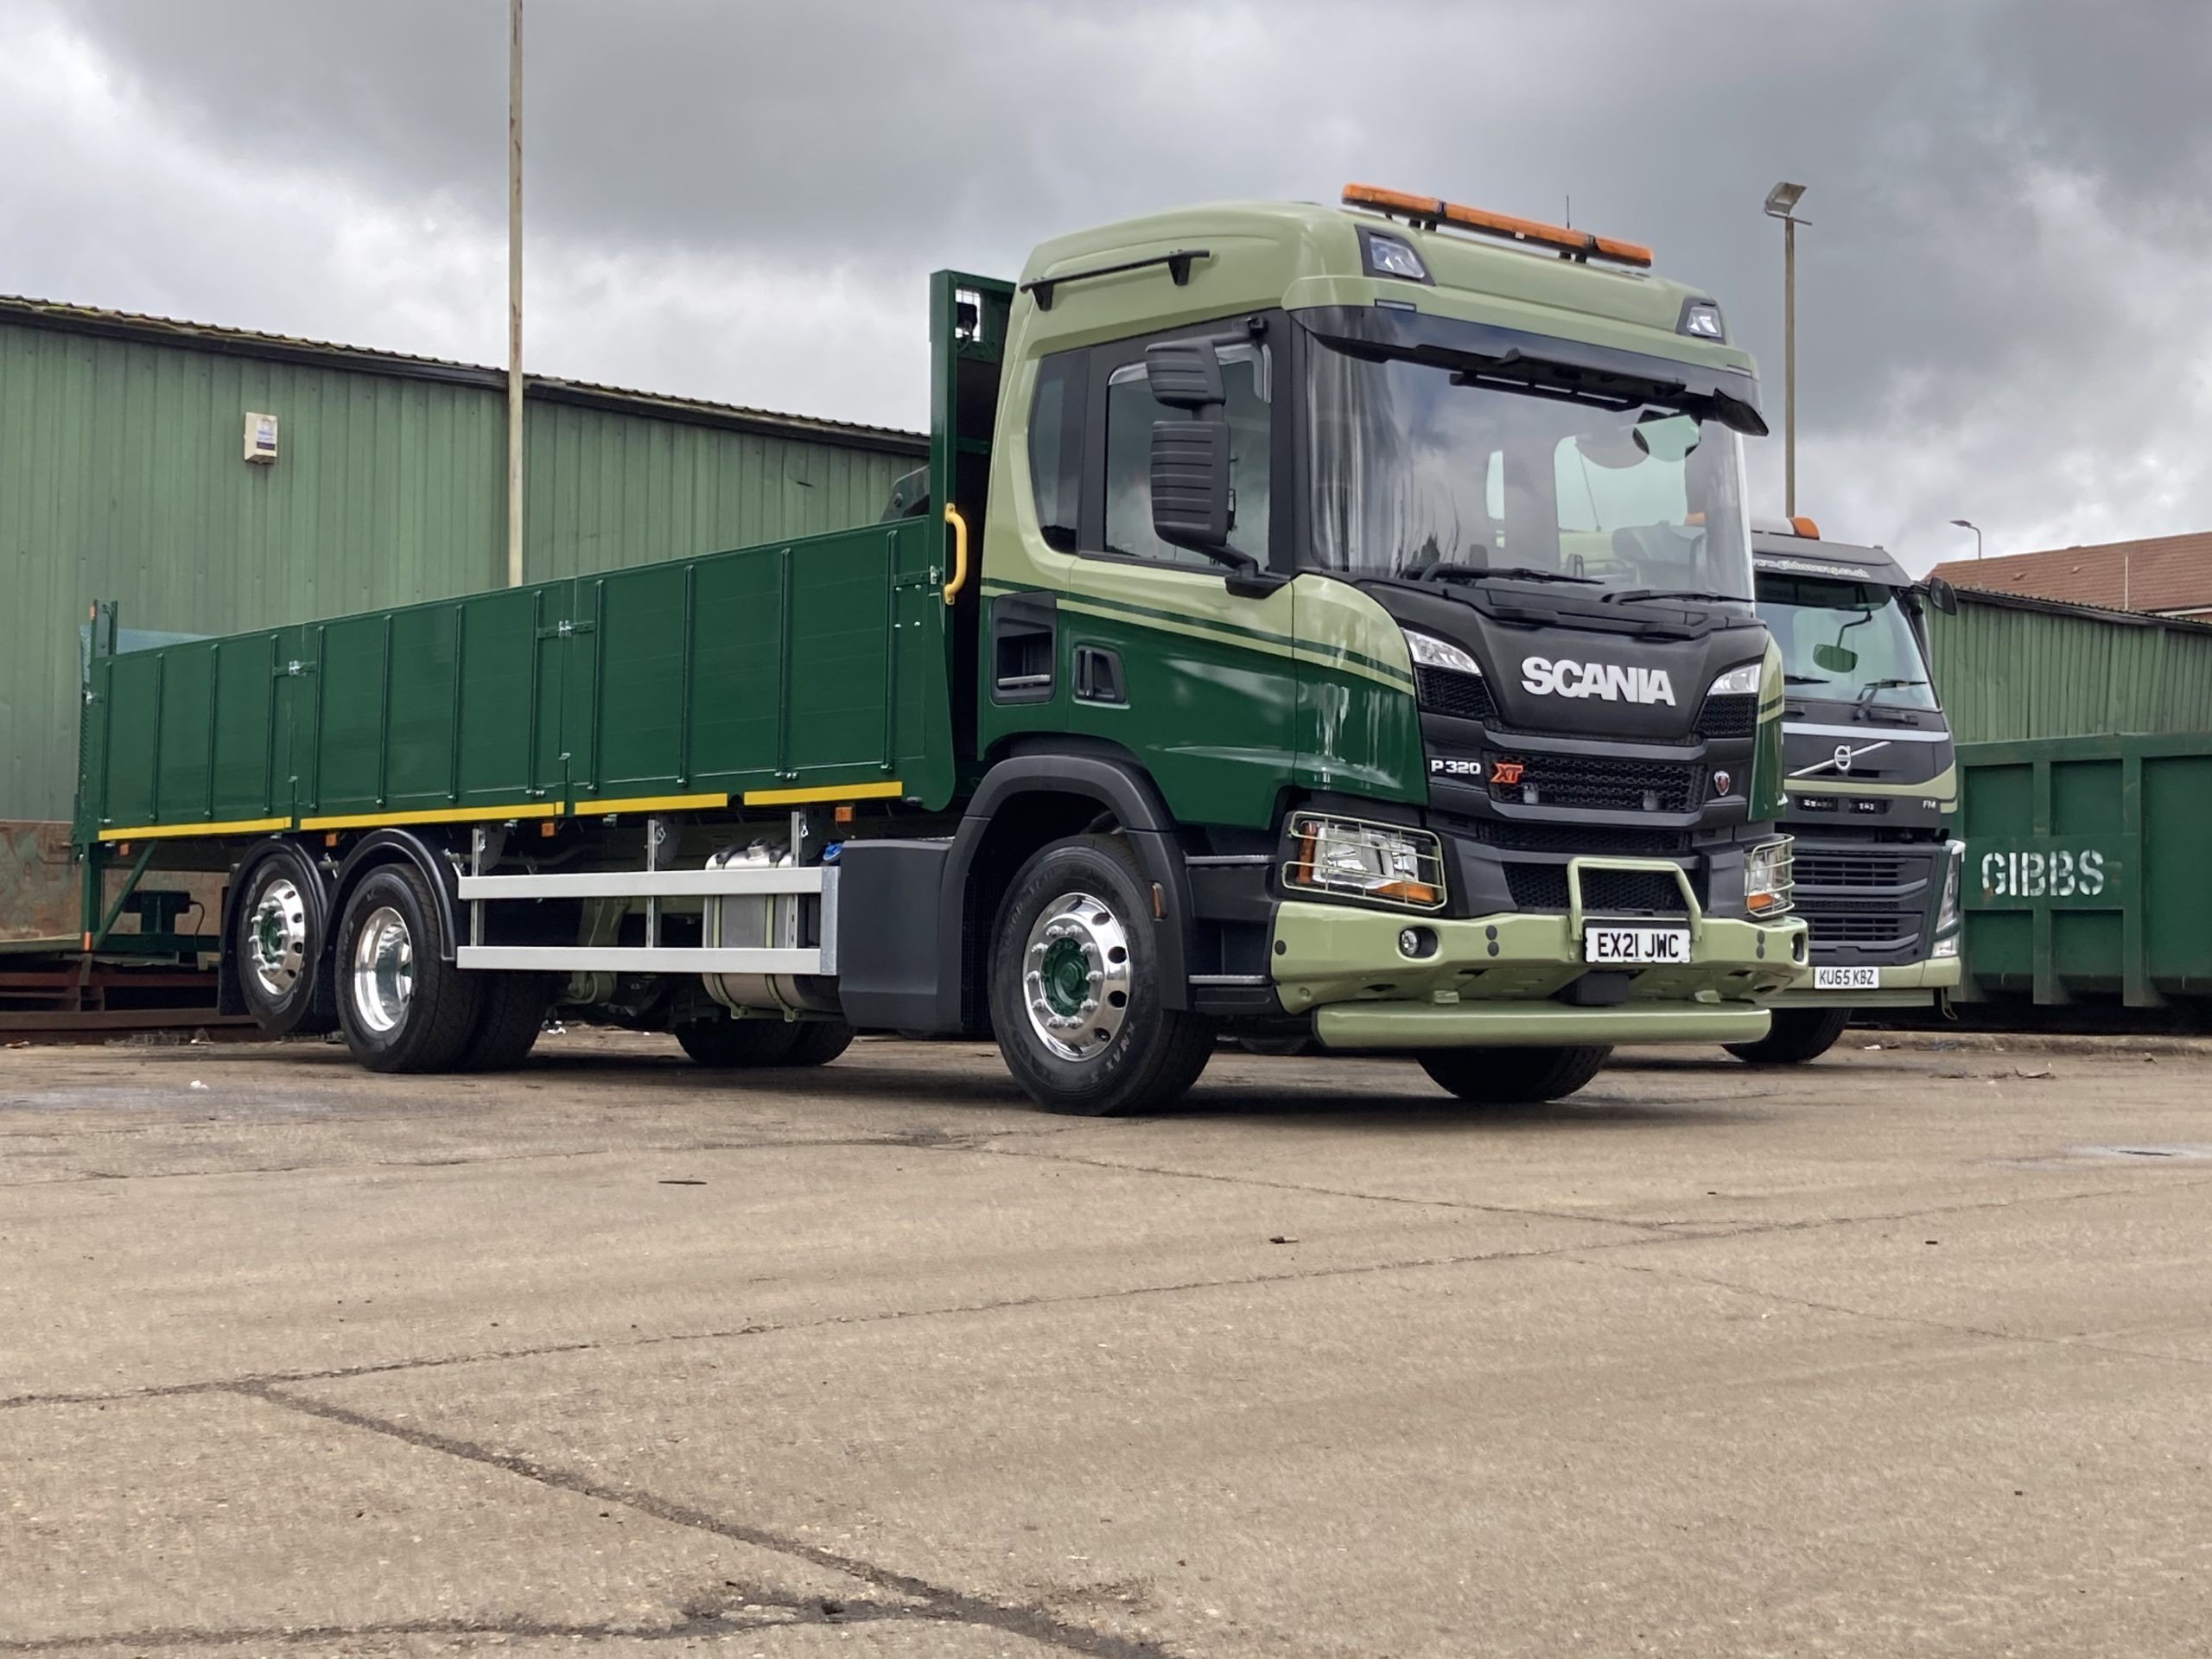 Gibbs Scania Vehicle in Green Front on